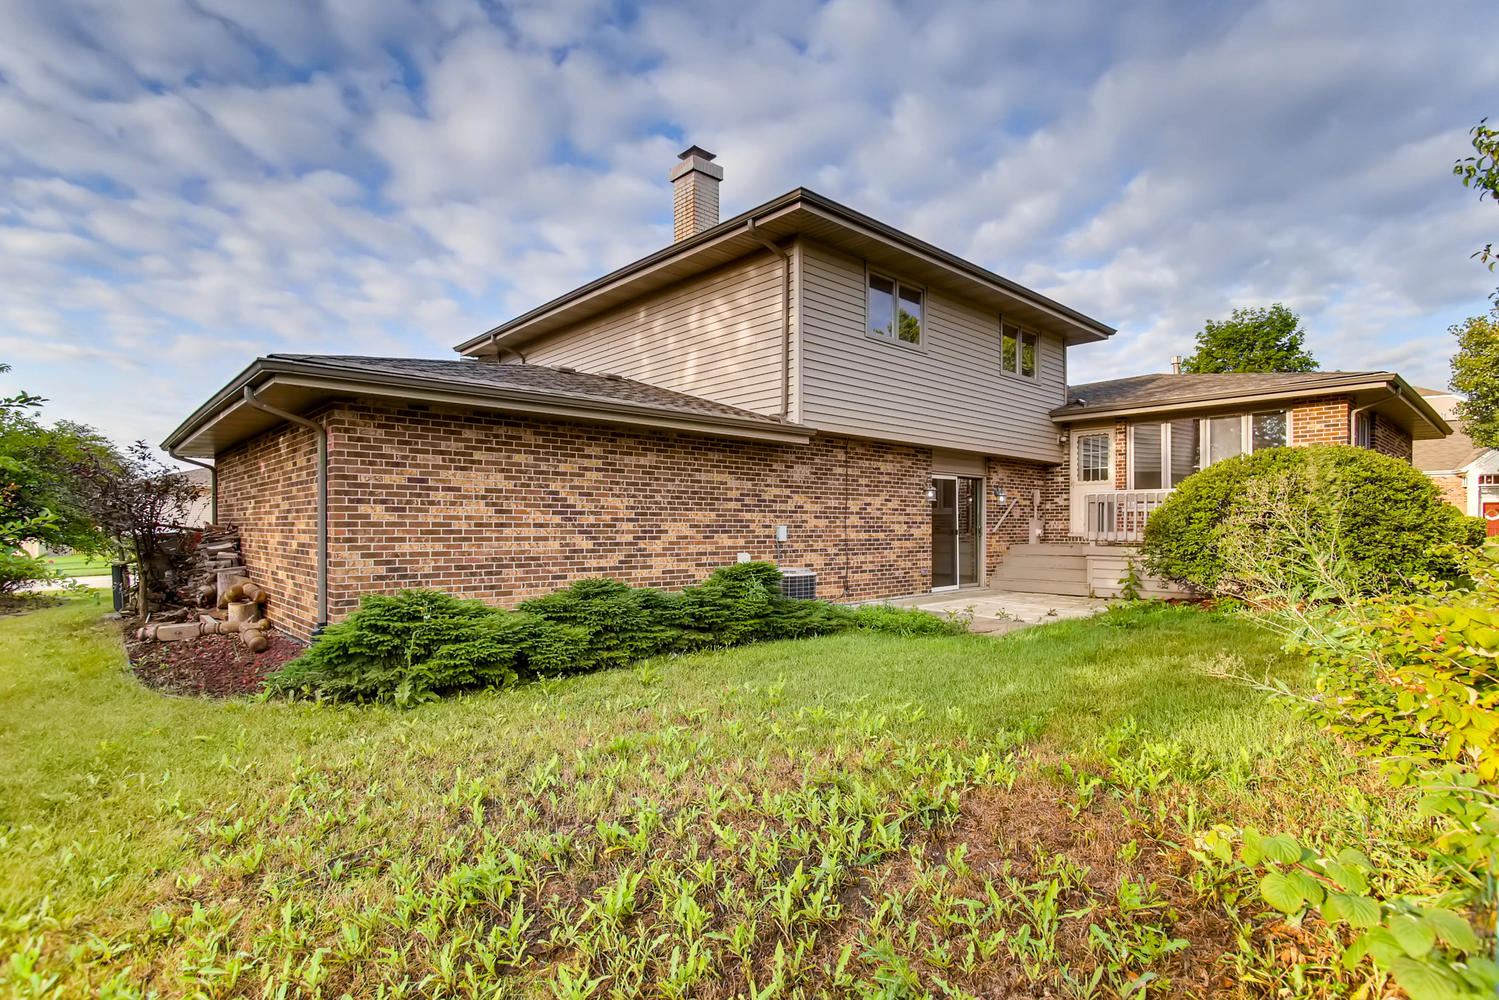 Photo of 9322 W 140th St, Orland Park, IL, 60462